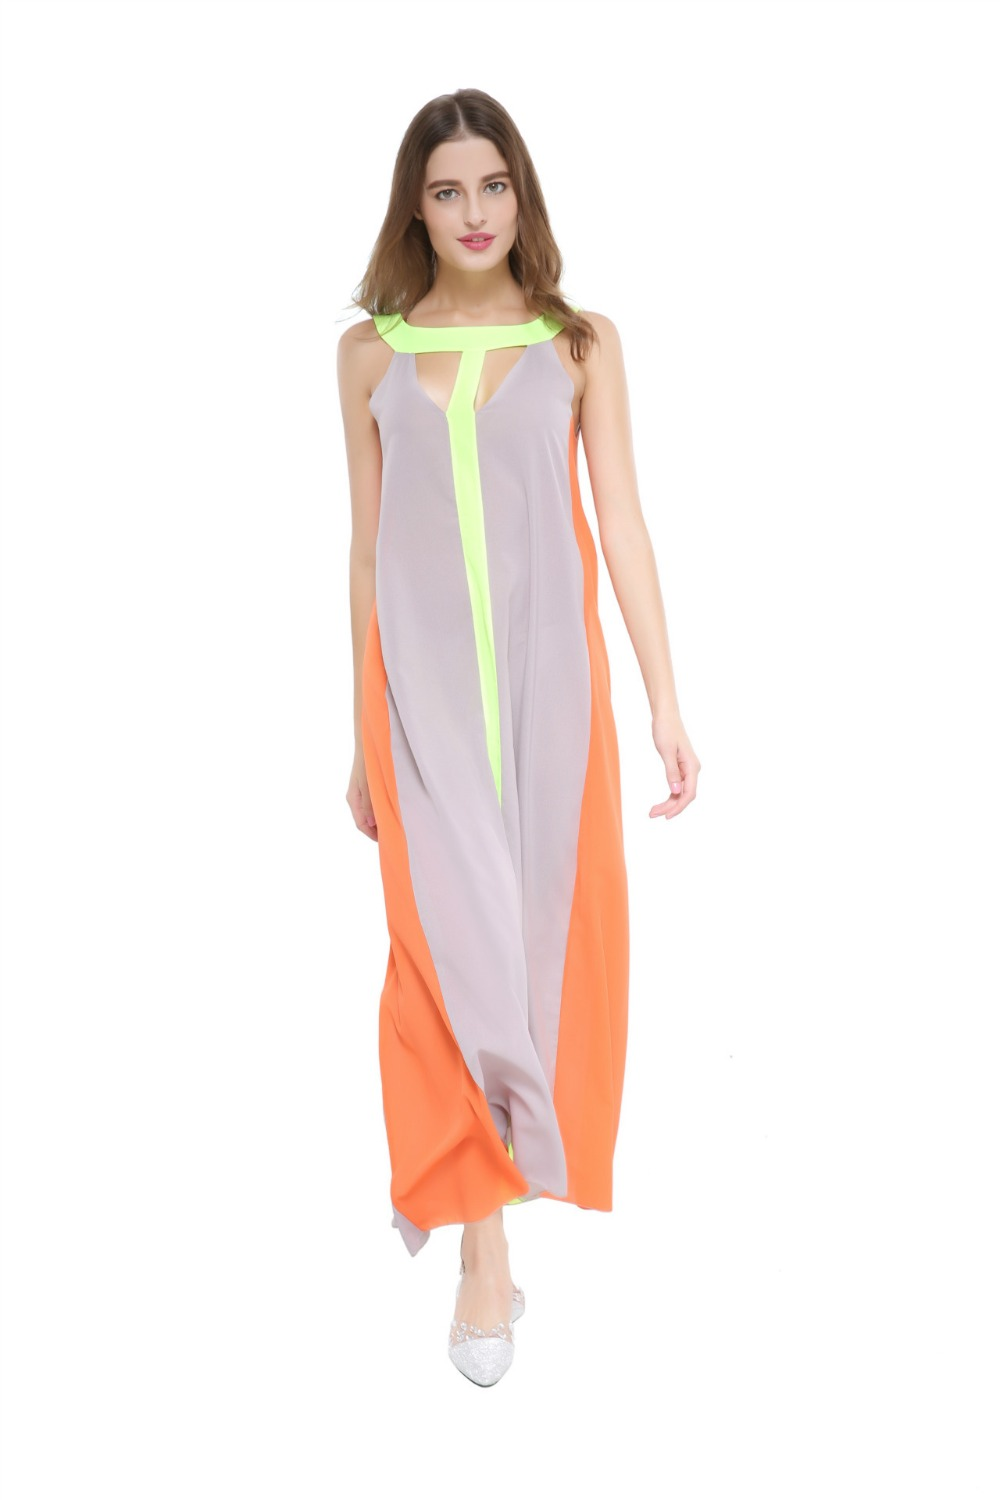 Compare Prices on Summer Maxi Dress Petite- Online Shopping/Buy ...